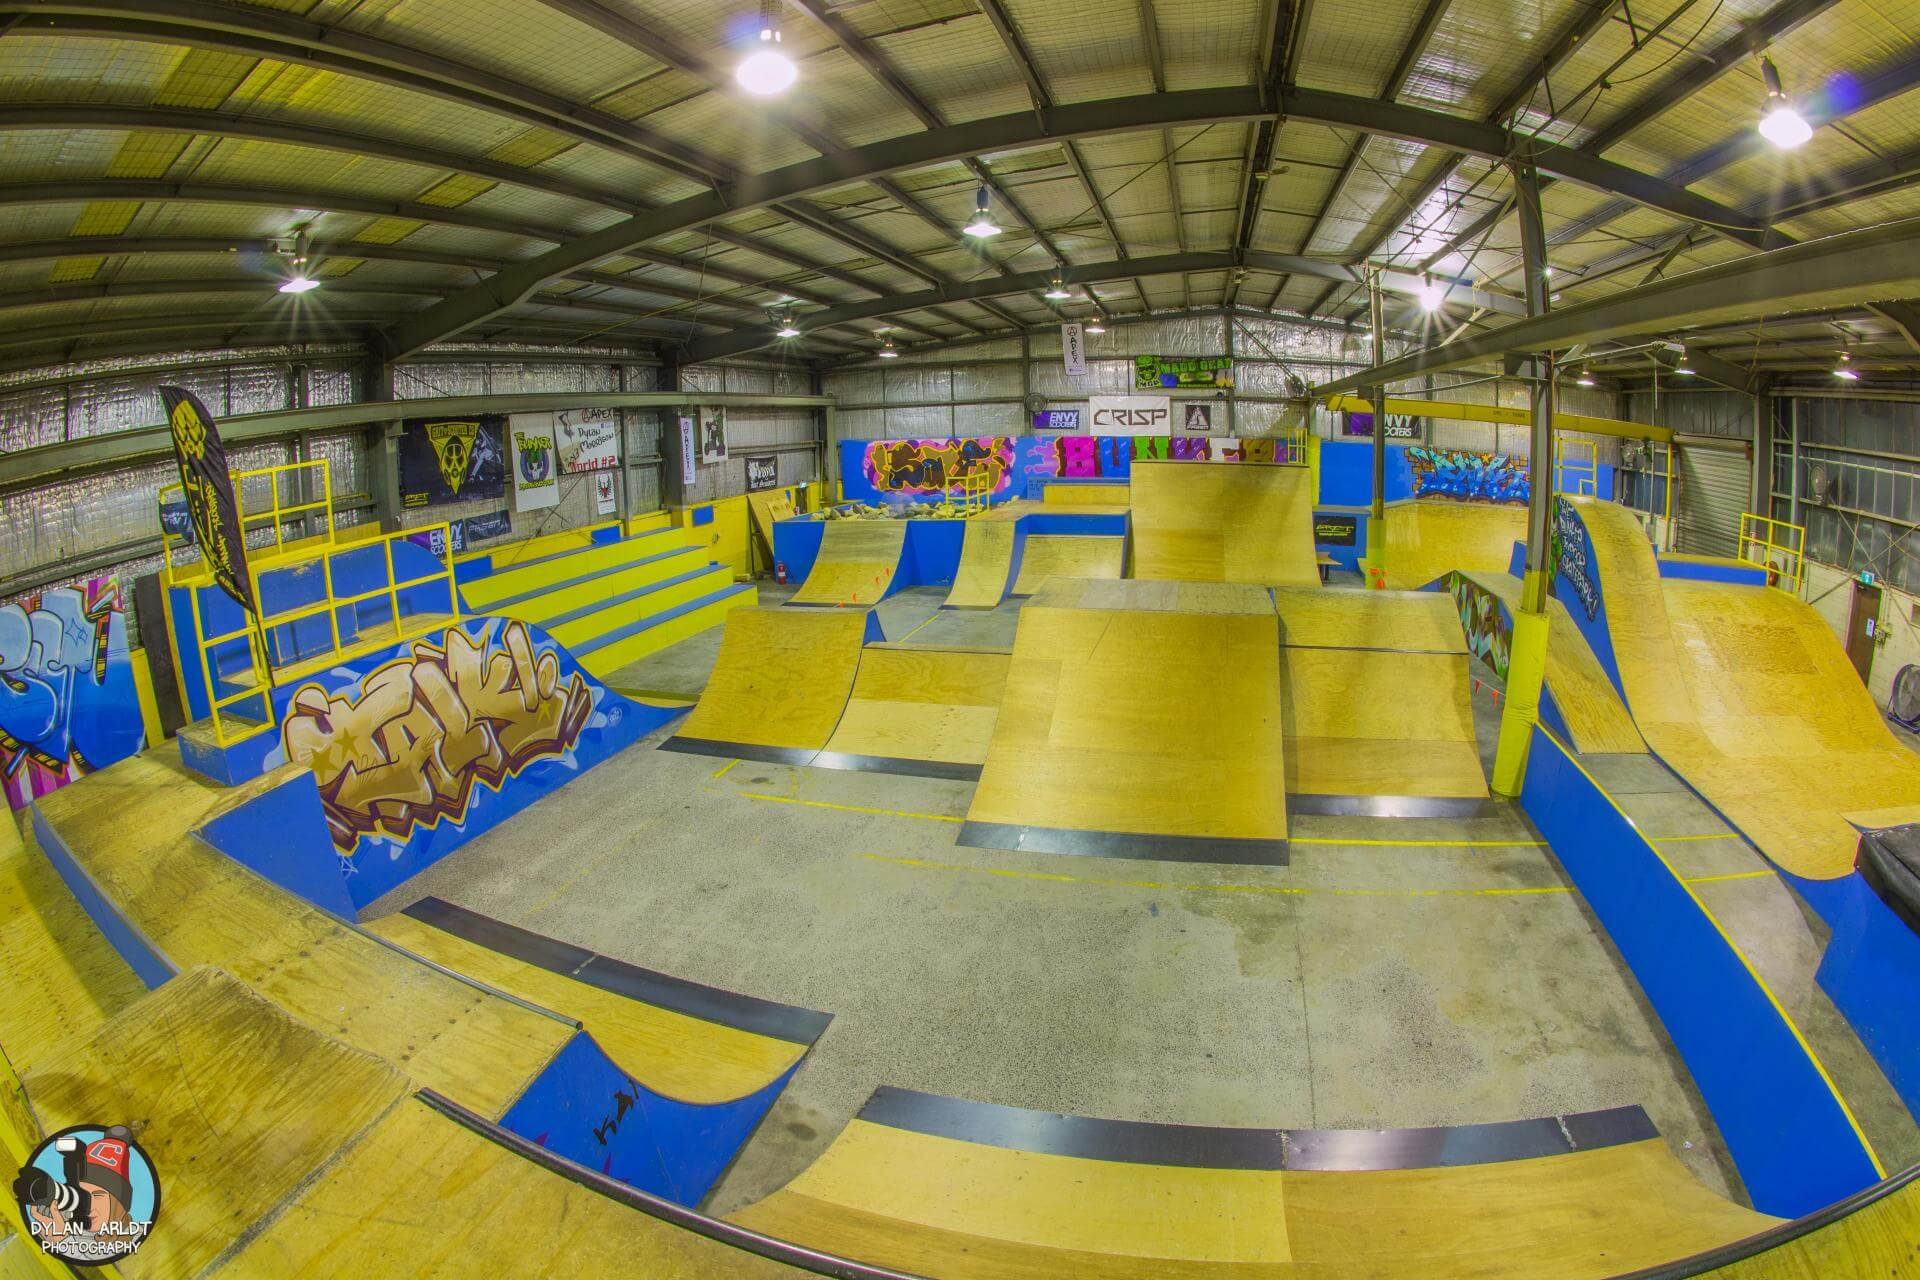 The Bunker Indoor Skatepark